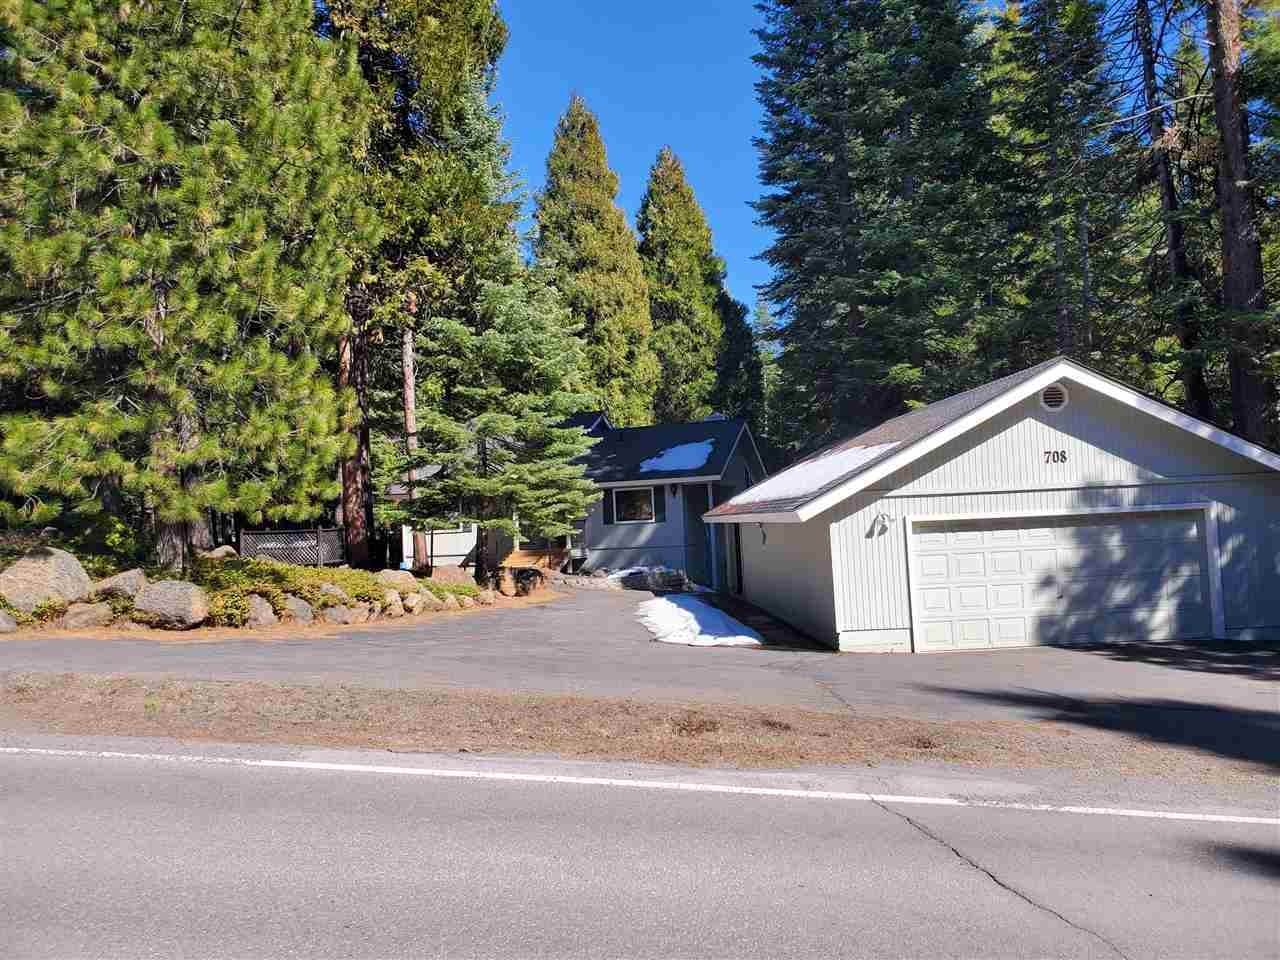 Single Family Homes for Active at 708 Clifford Drive Lake Almanor, California 96137 United States